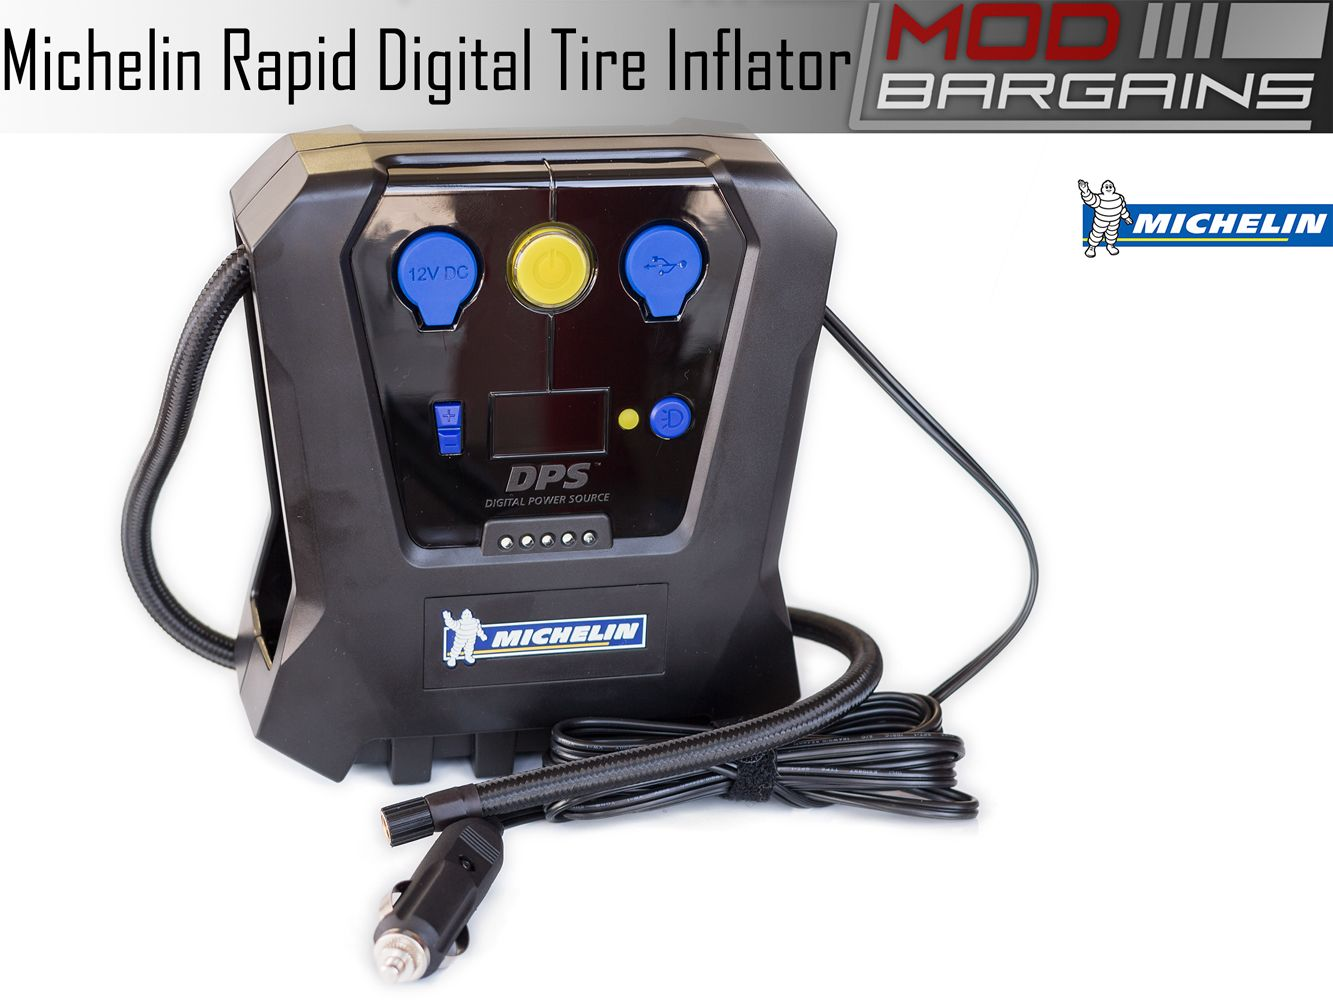 Michelin High Power 12 Volt Rapid Digital Tire Inflator with USB 5V Power Port and LED Lights 12266